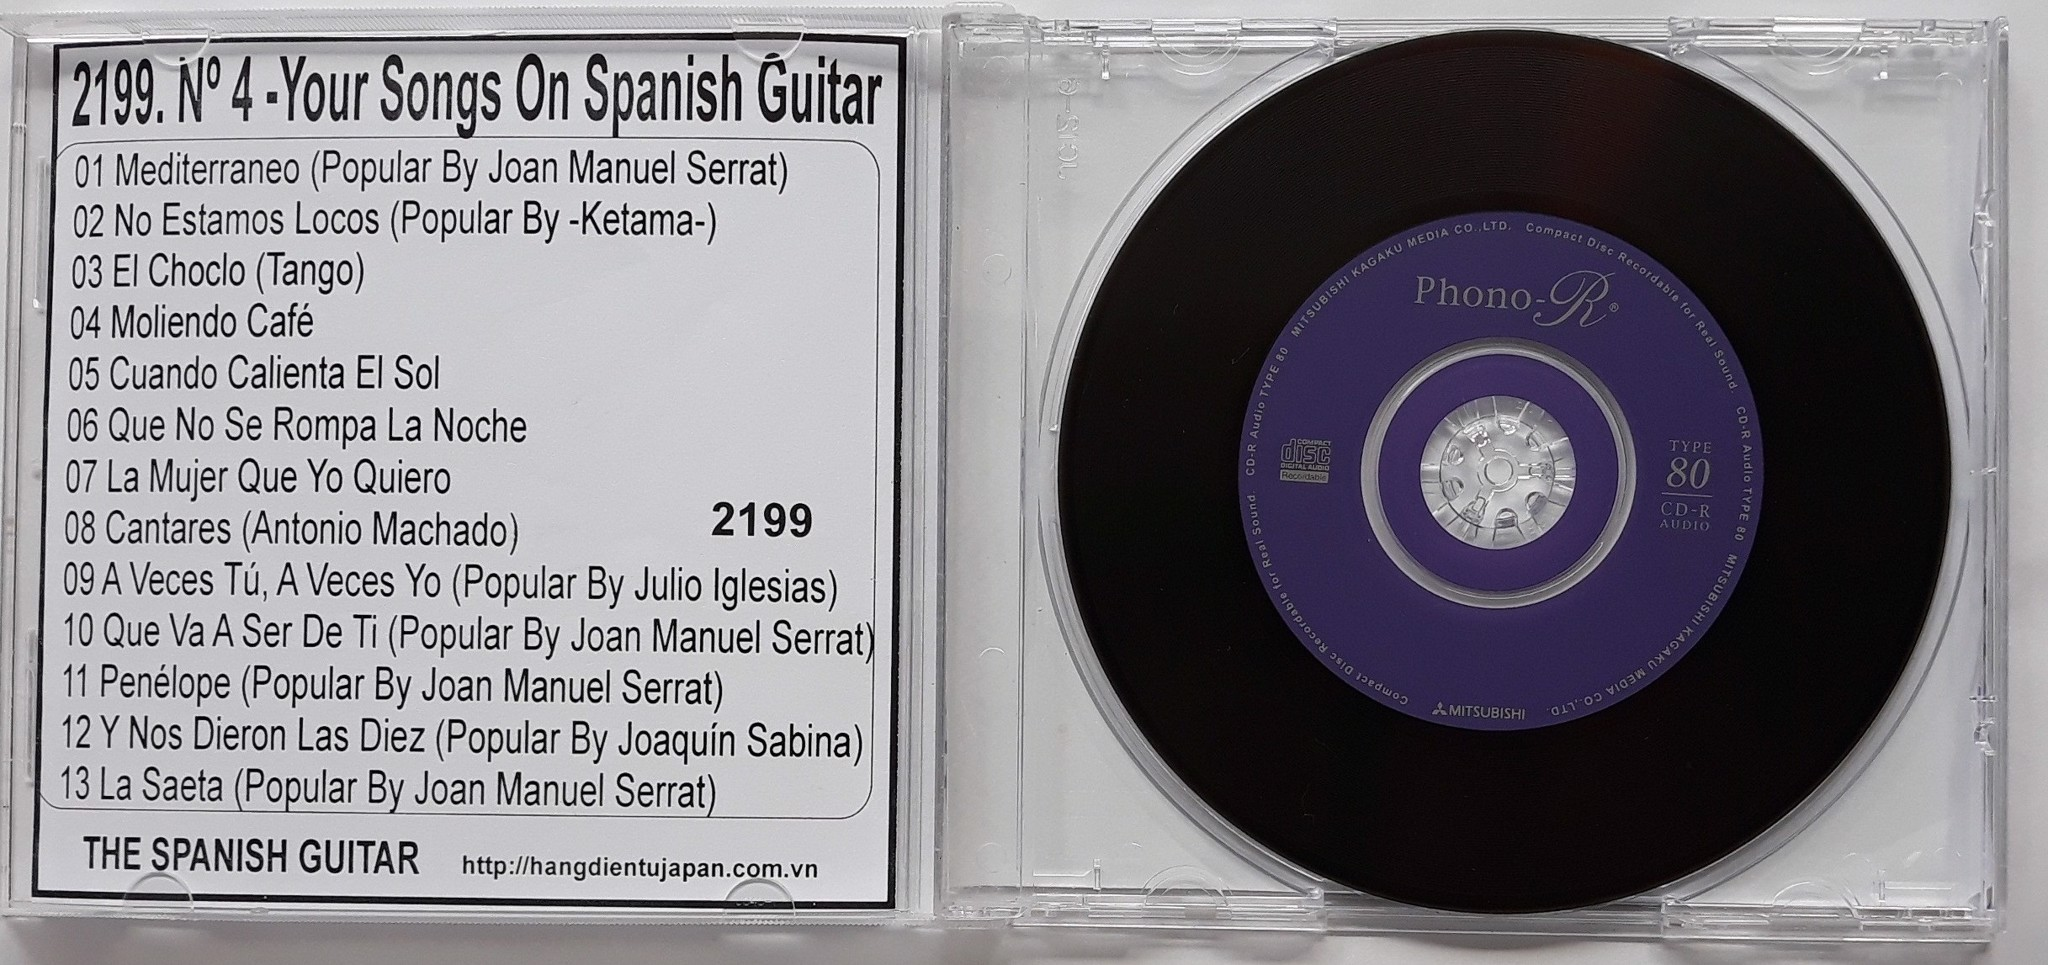 2199. The Spanish Guitar - Nº 4 -Your Songs On Spanish Guitar- (Ambient Lounge For Relaxing)